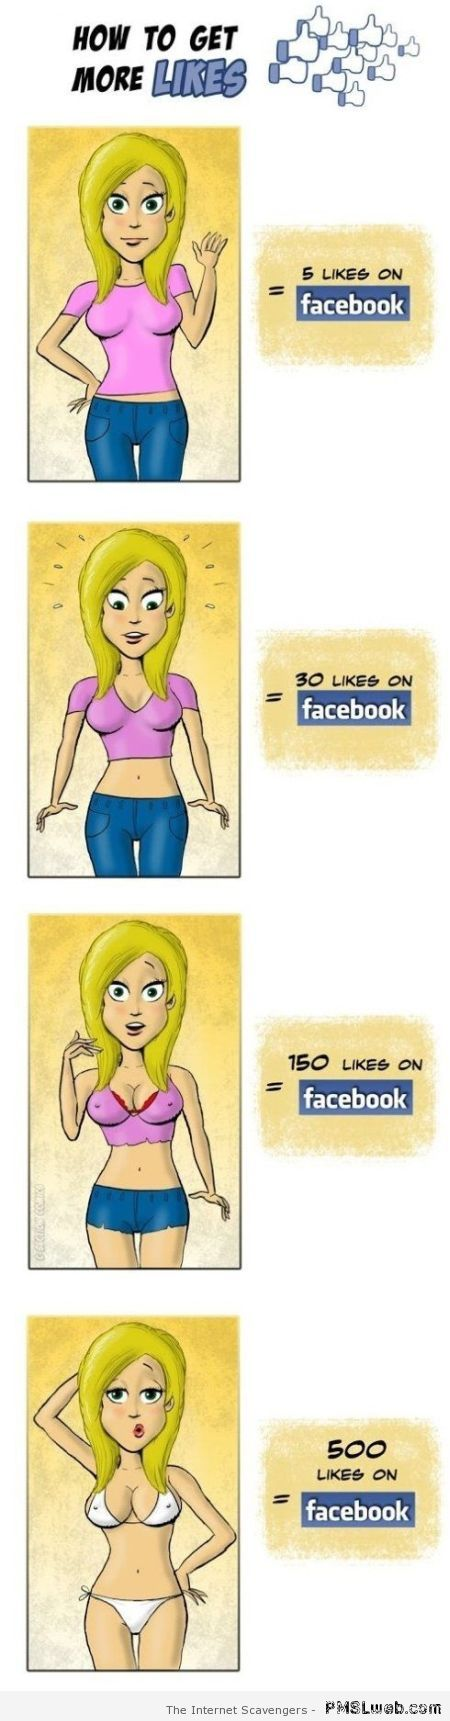 Funny how to get more likes at PMSLweb.com